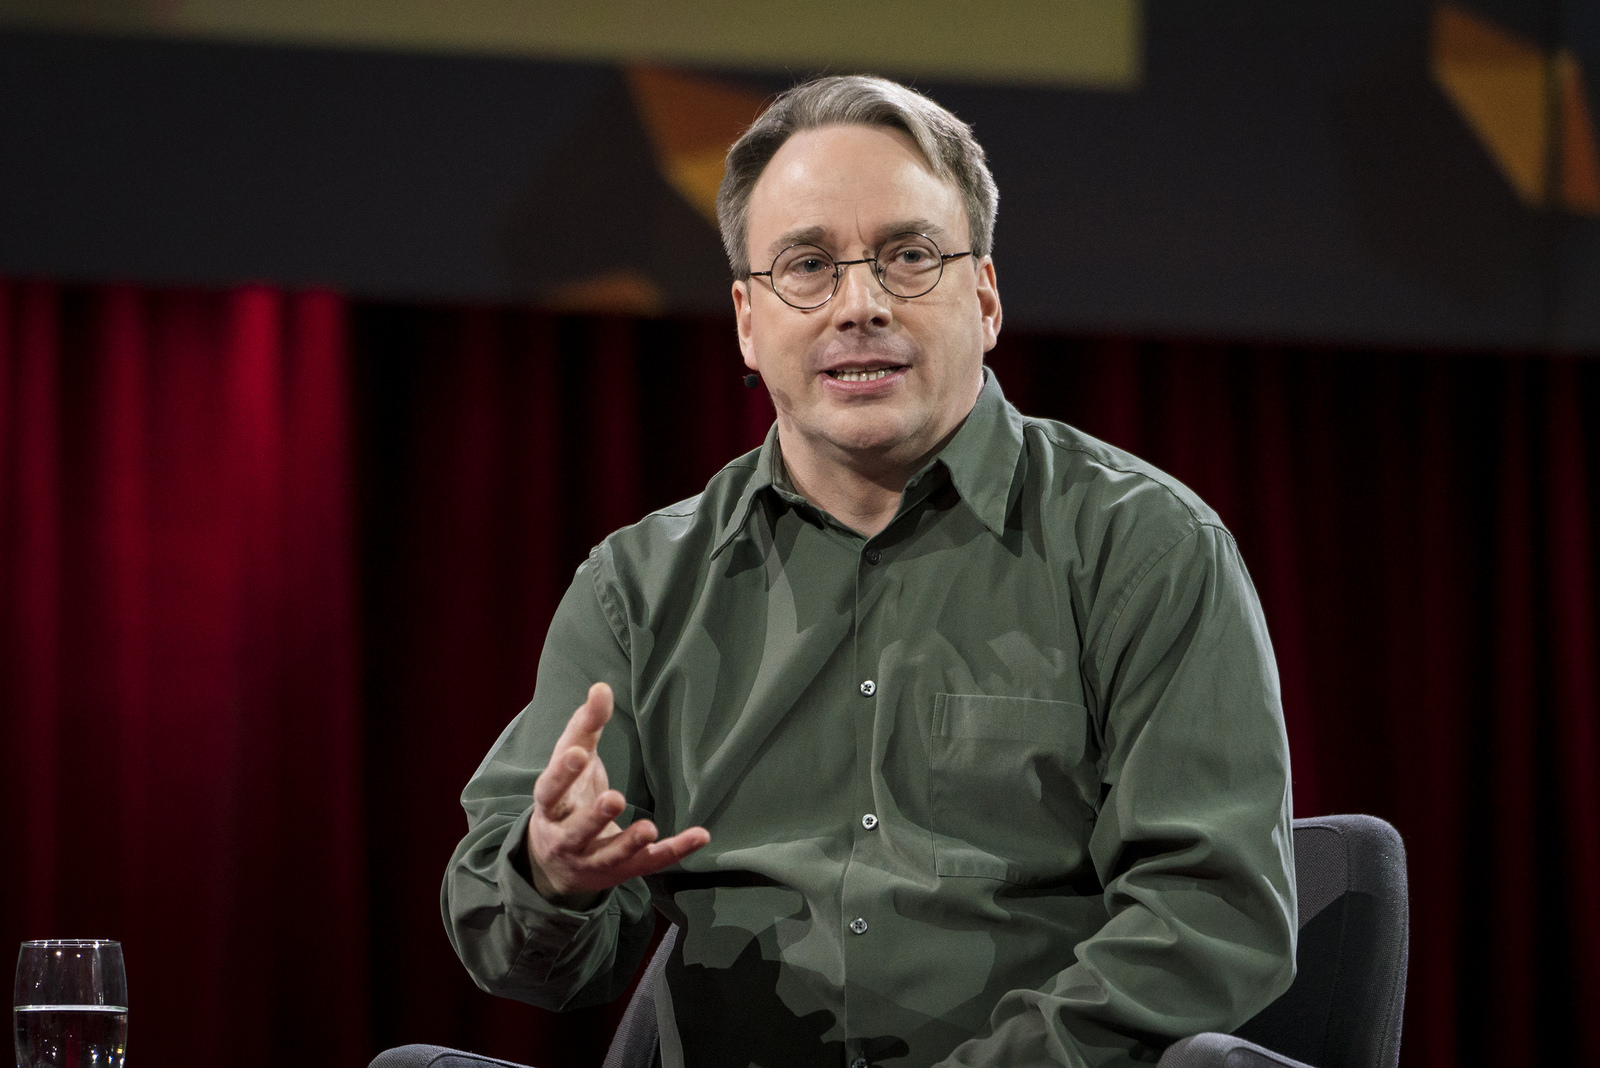 Linus Torvalds Speaks Openly about Work and Code at TED2016 [Video] - Linux. com